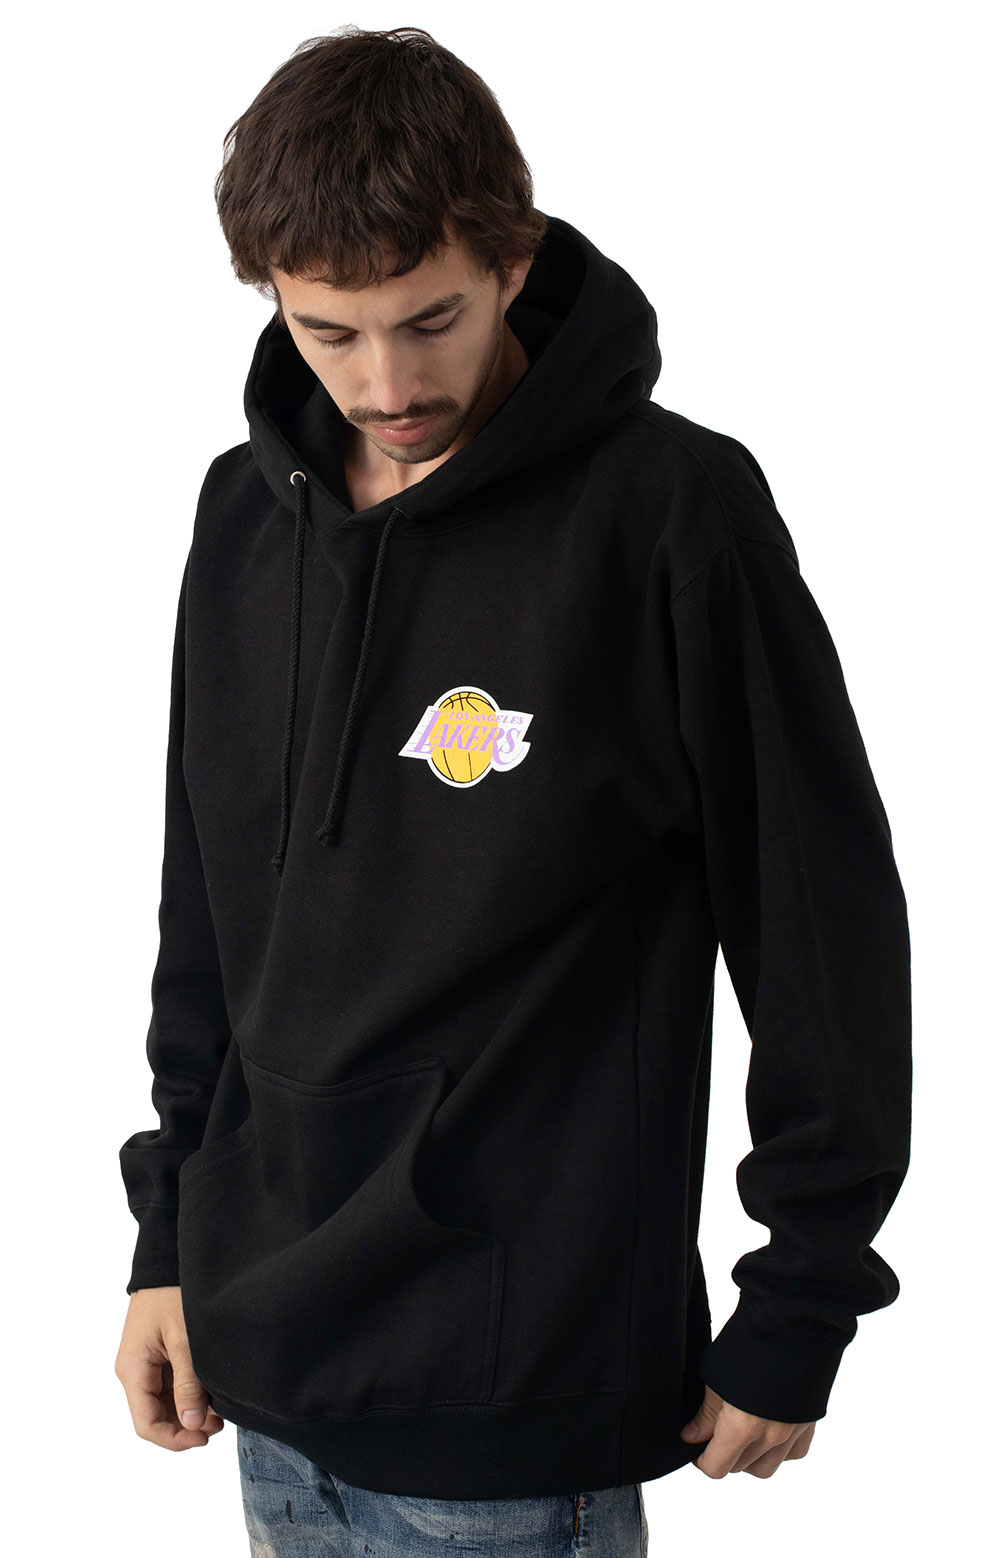 NBA Showtime 17x Pullover Hoodie - Los Angeles Lakers 3